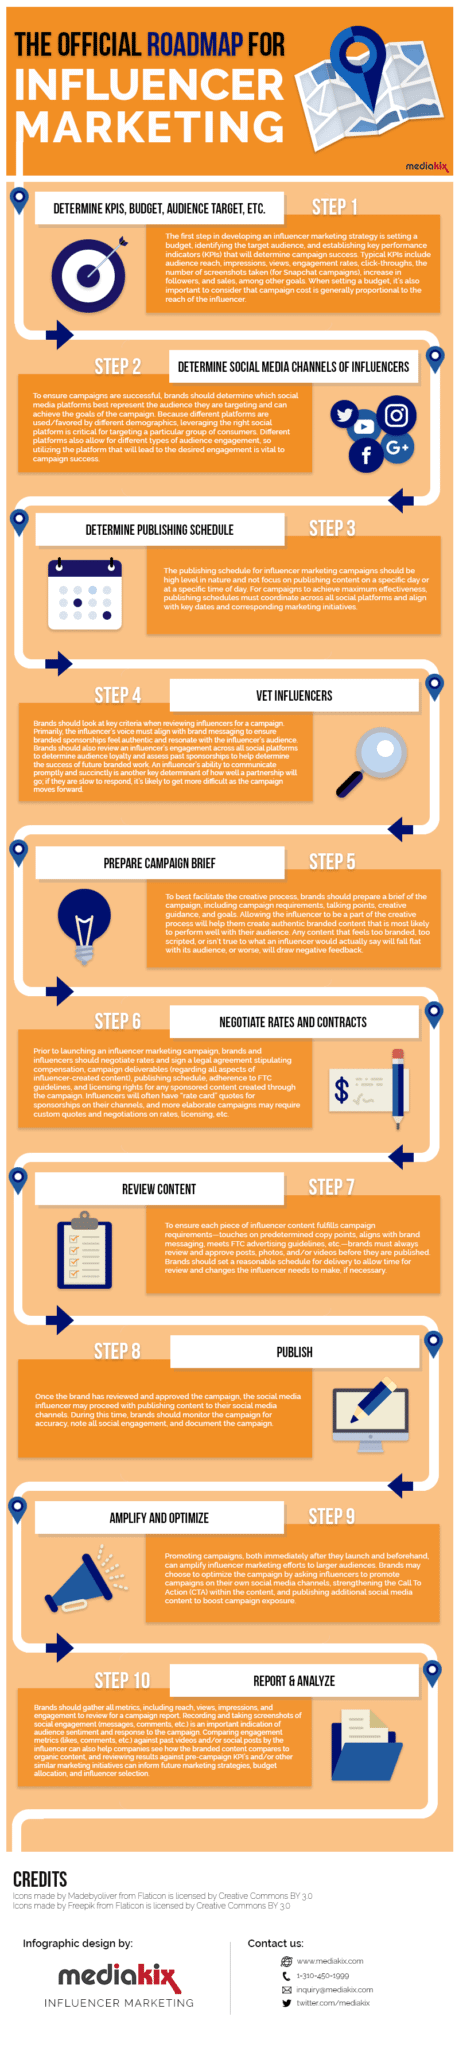 Influencer-Marketing-Infographic-Roadmap-Steps-Guide3